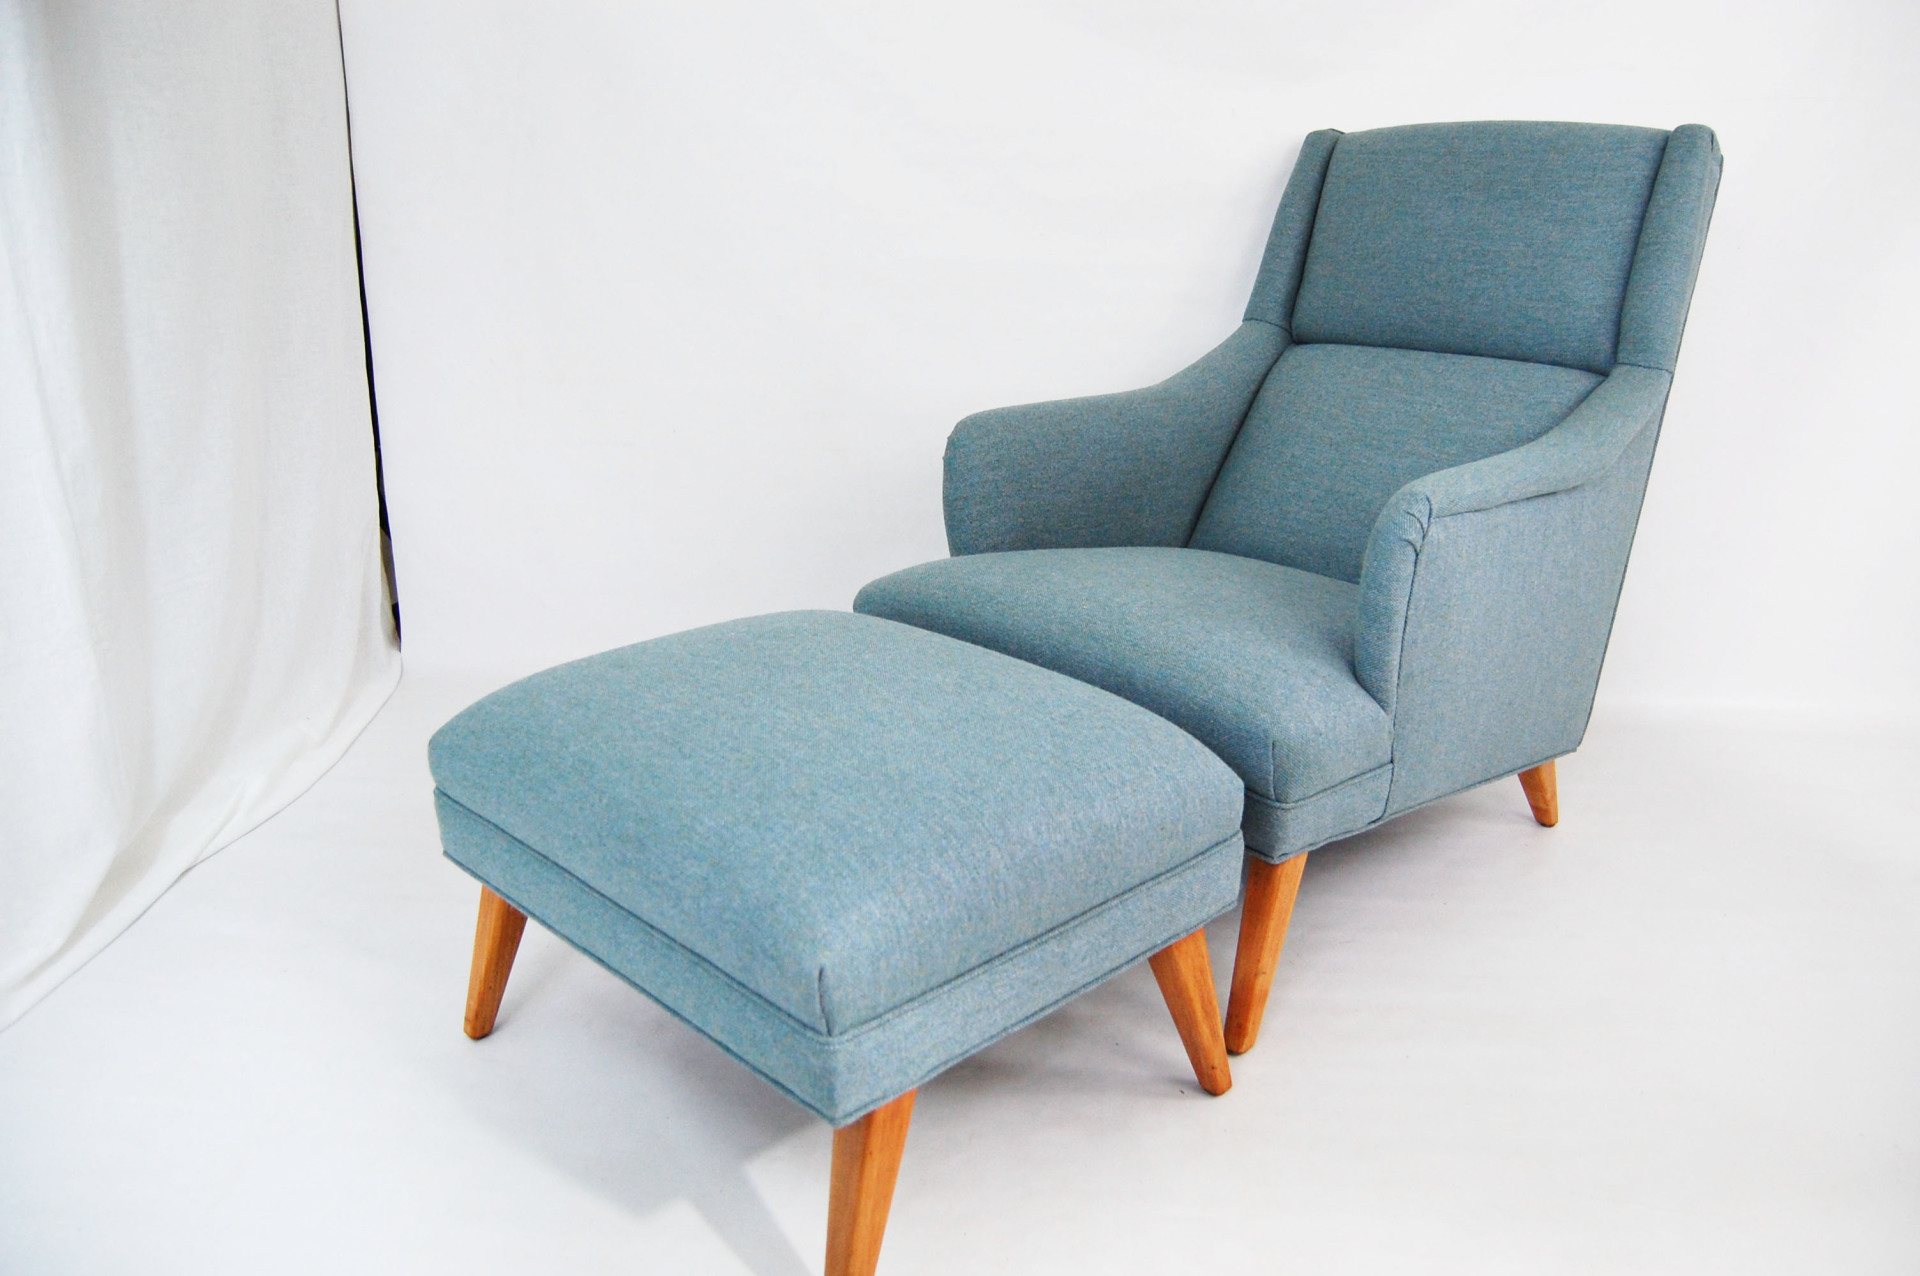 North west, West coast, WA, Dux, mcm, mod, mid century modern, vintage, furniture, teak, mid century 55, midcentury55, Seattle, Washington, Lounge chair, ottoman,